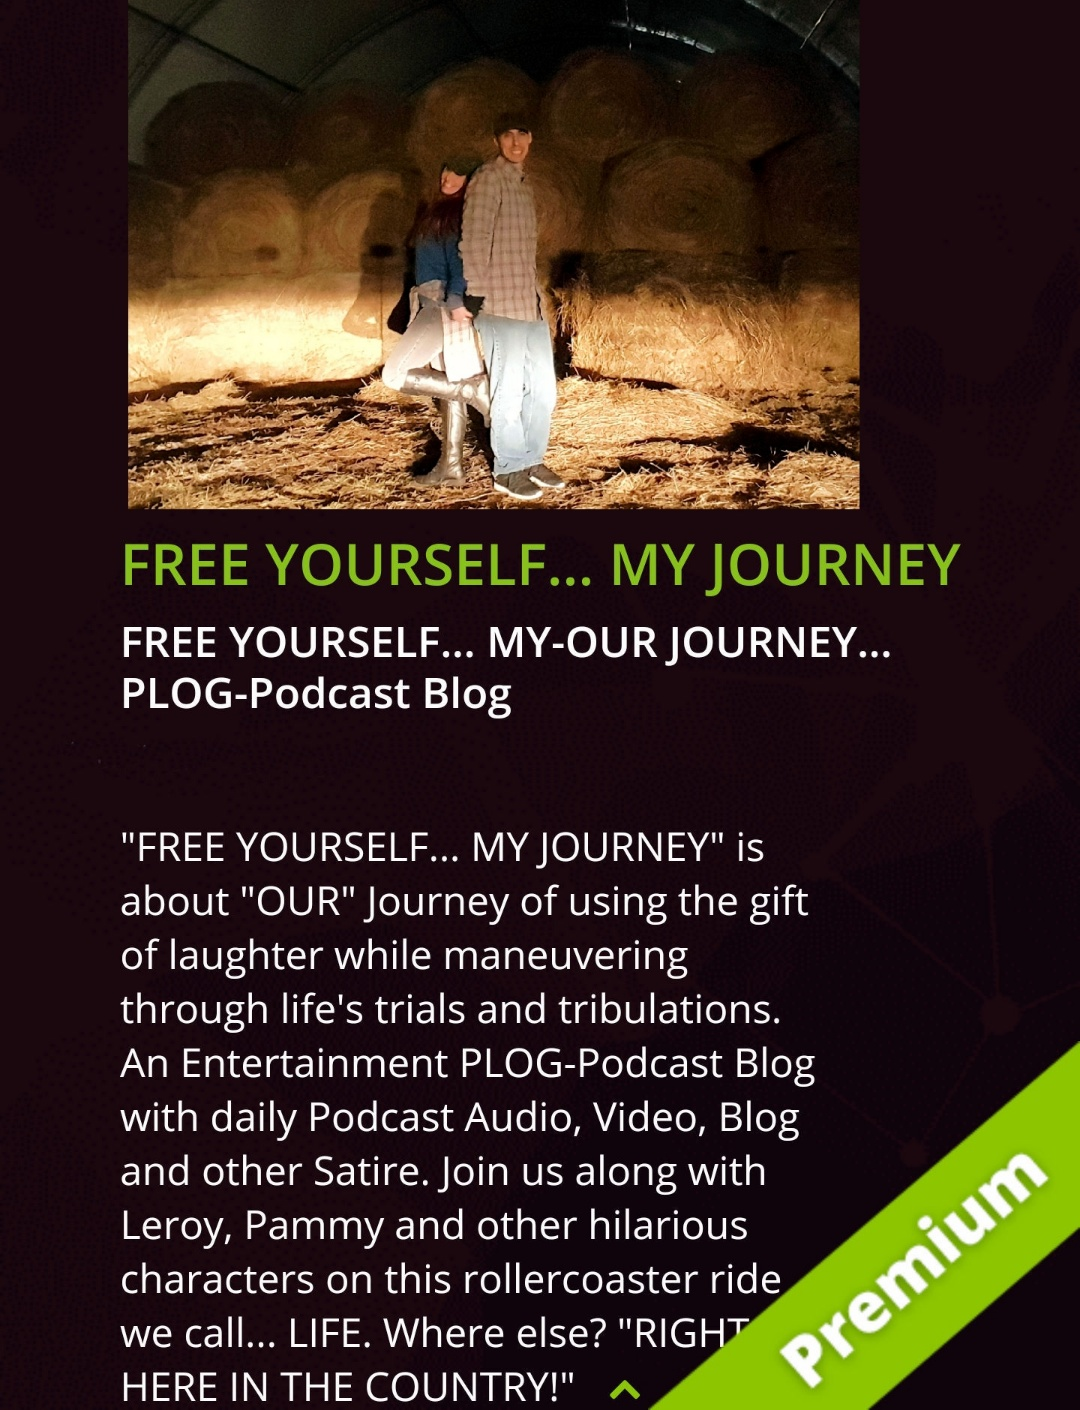 FREE YOURSELF… MY-OUR JOURNEY… PLOG-Podcast Blog